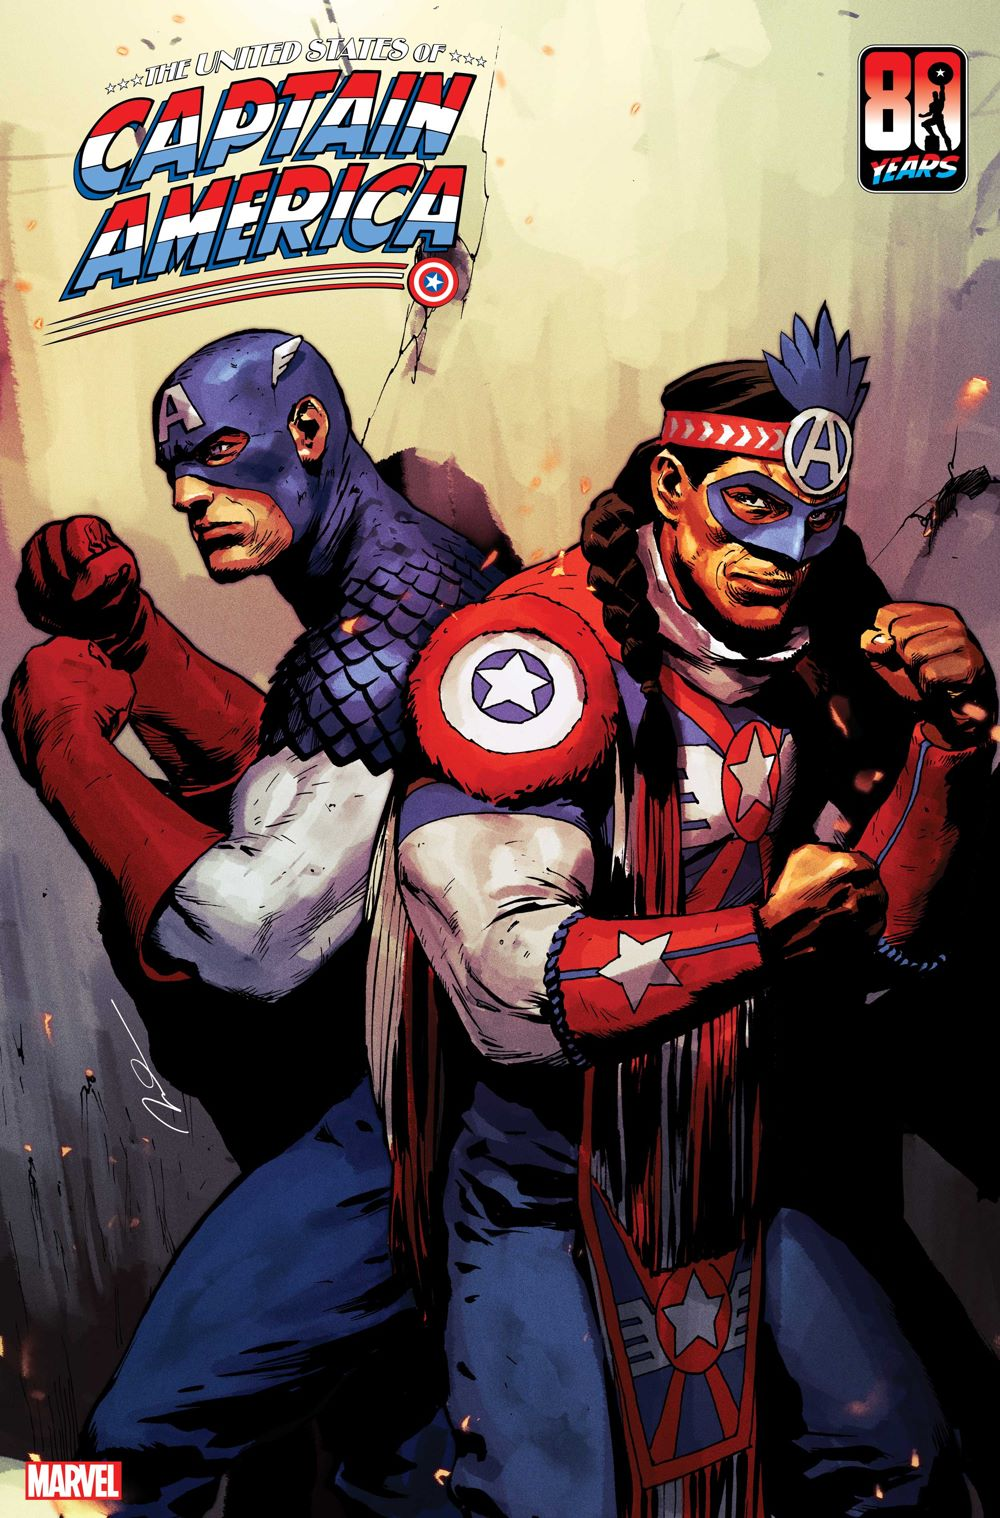 USCAPA2021003_Cov THE UNITED STATES OF CAPTAIN AMERICA #3 introduces Kickapoo Tribe character